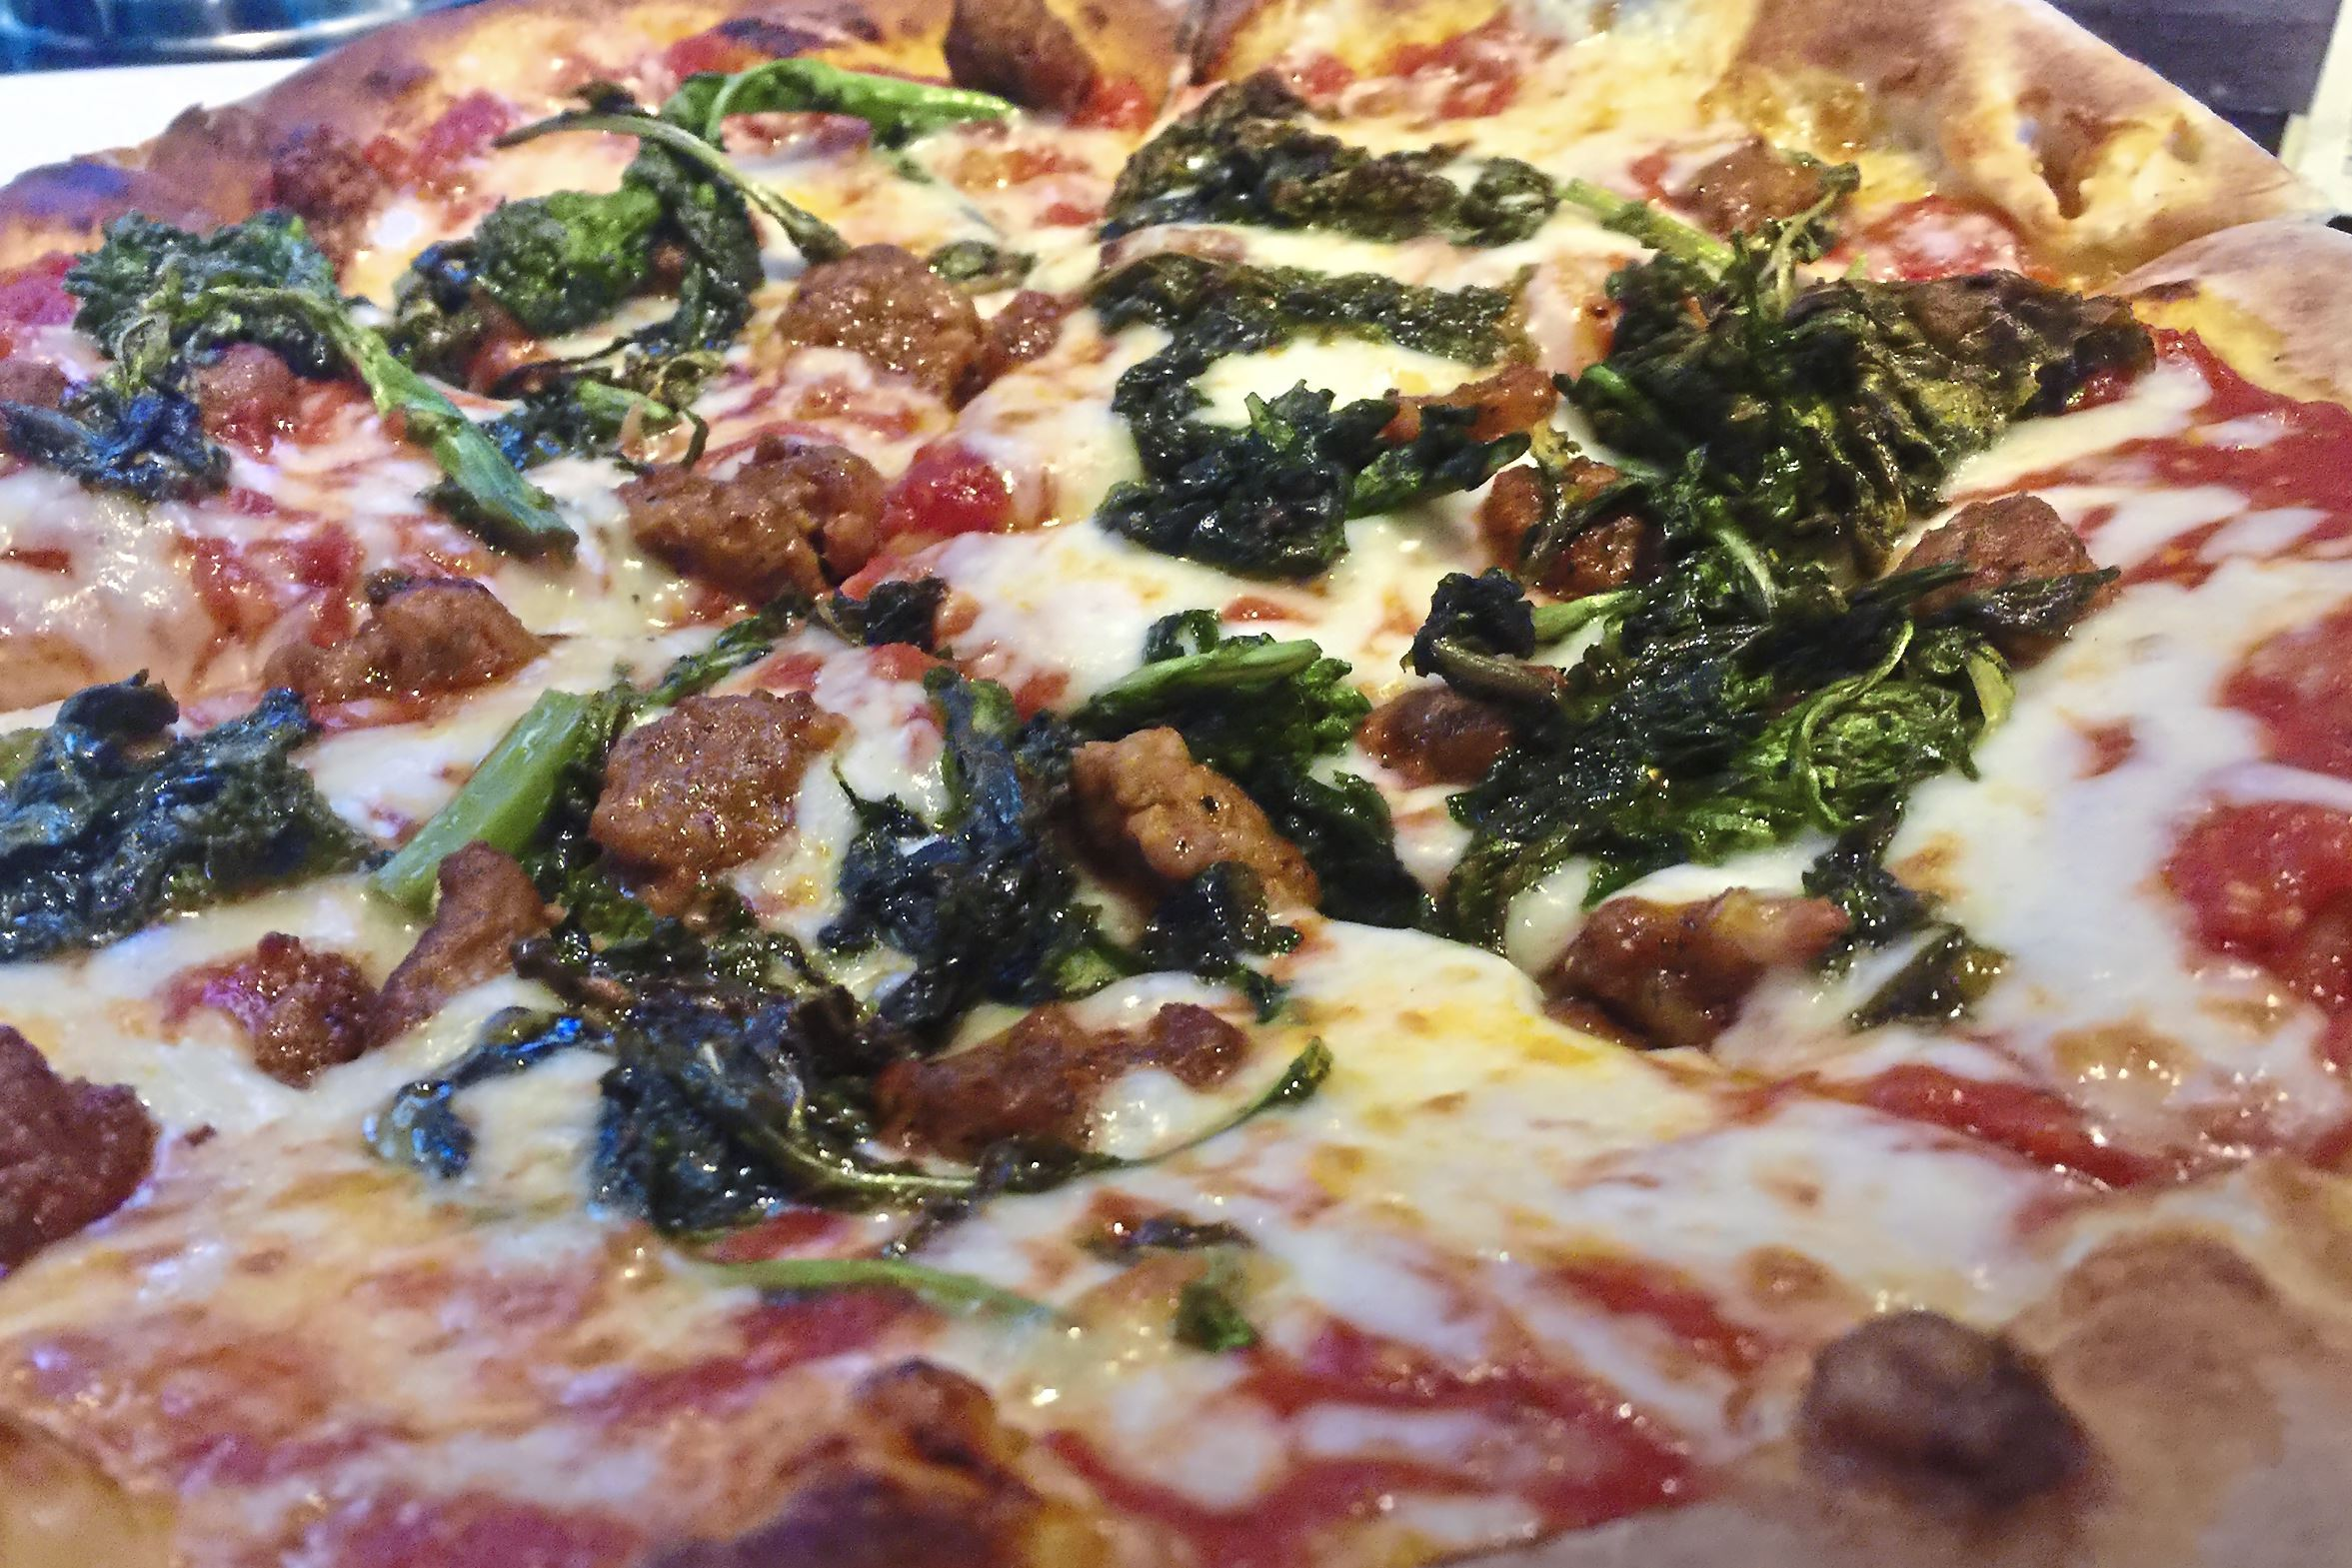 munch1019 pub broccoli rabe pizza-1 The rabe and sausage pizza at The Pub at 333 in Oakmont.